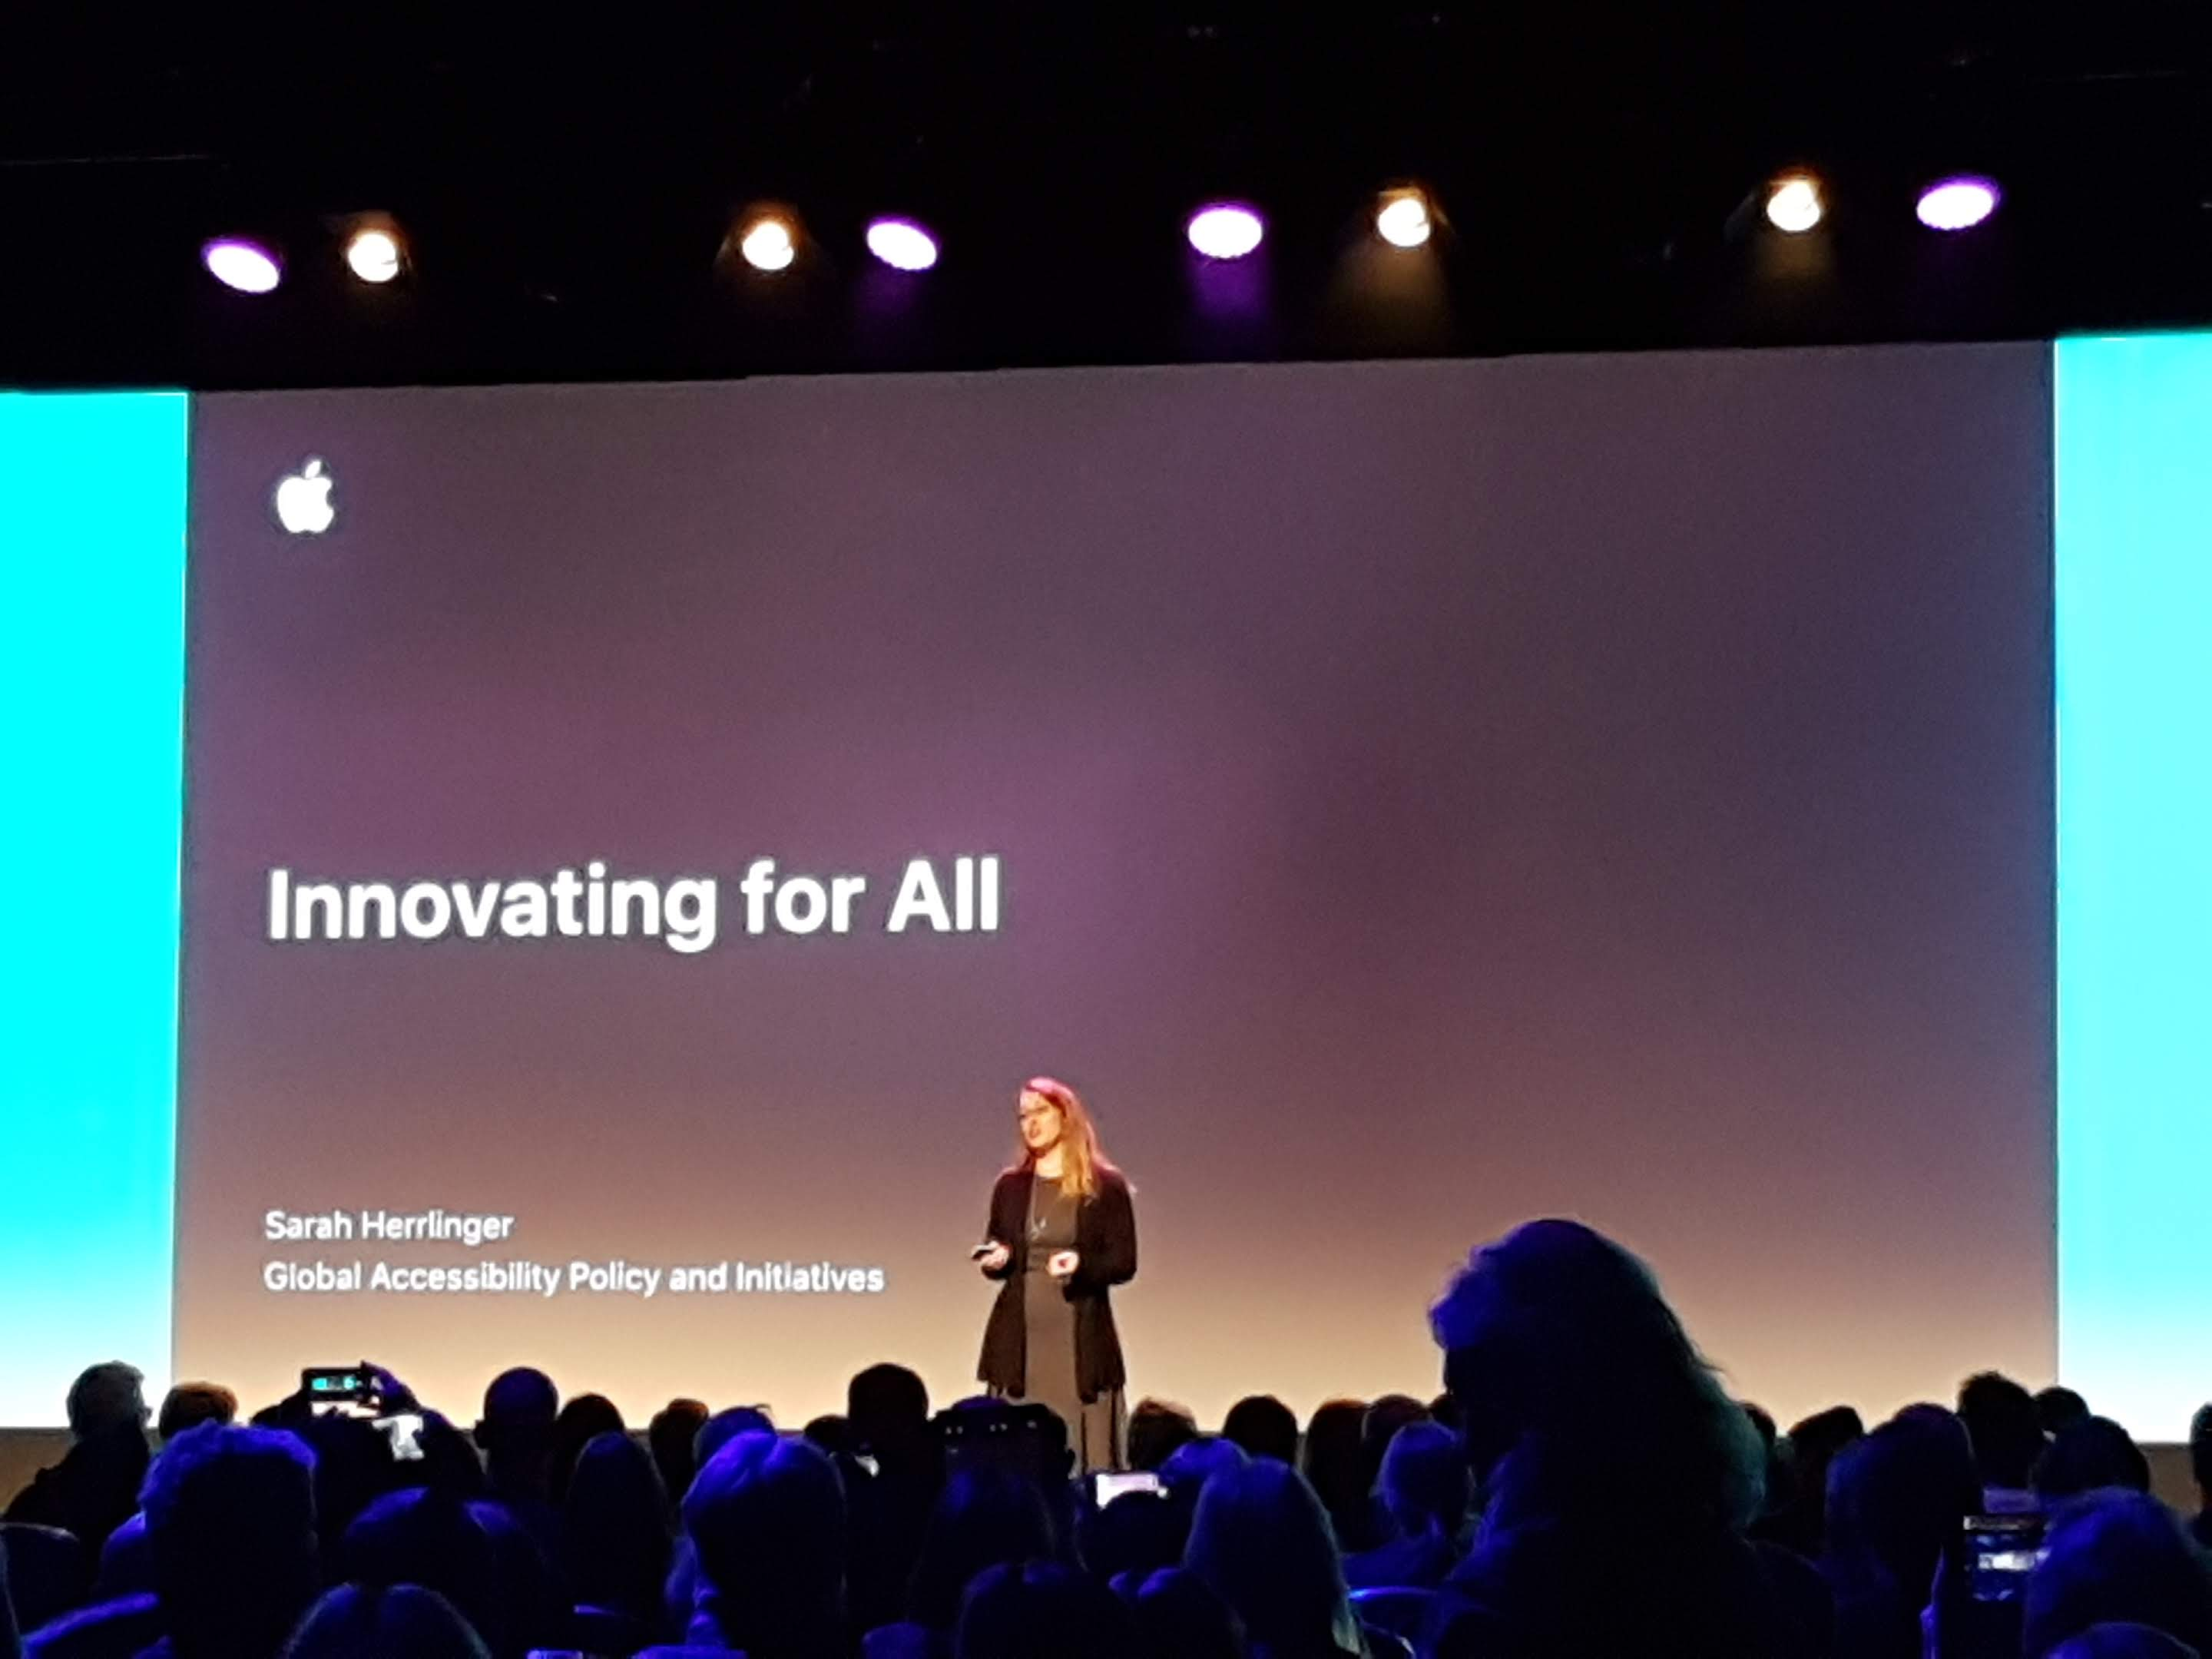 Sarah Herrlinger, Apple's Director of Global Accessibility Policy and Initiatives, speaking about Apple's accessibility features